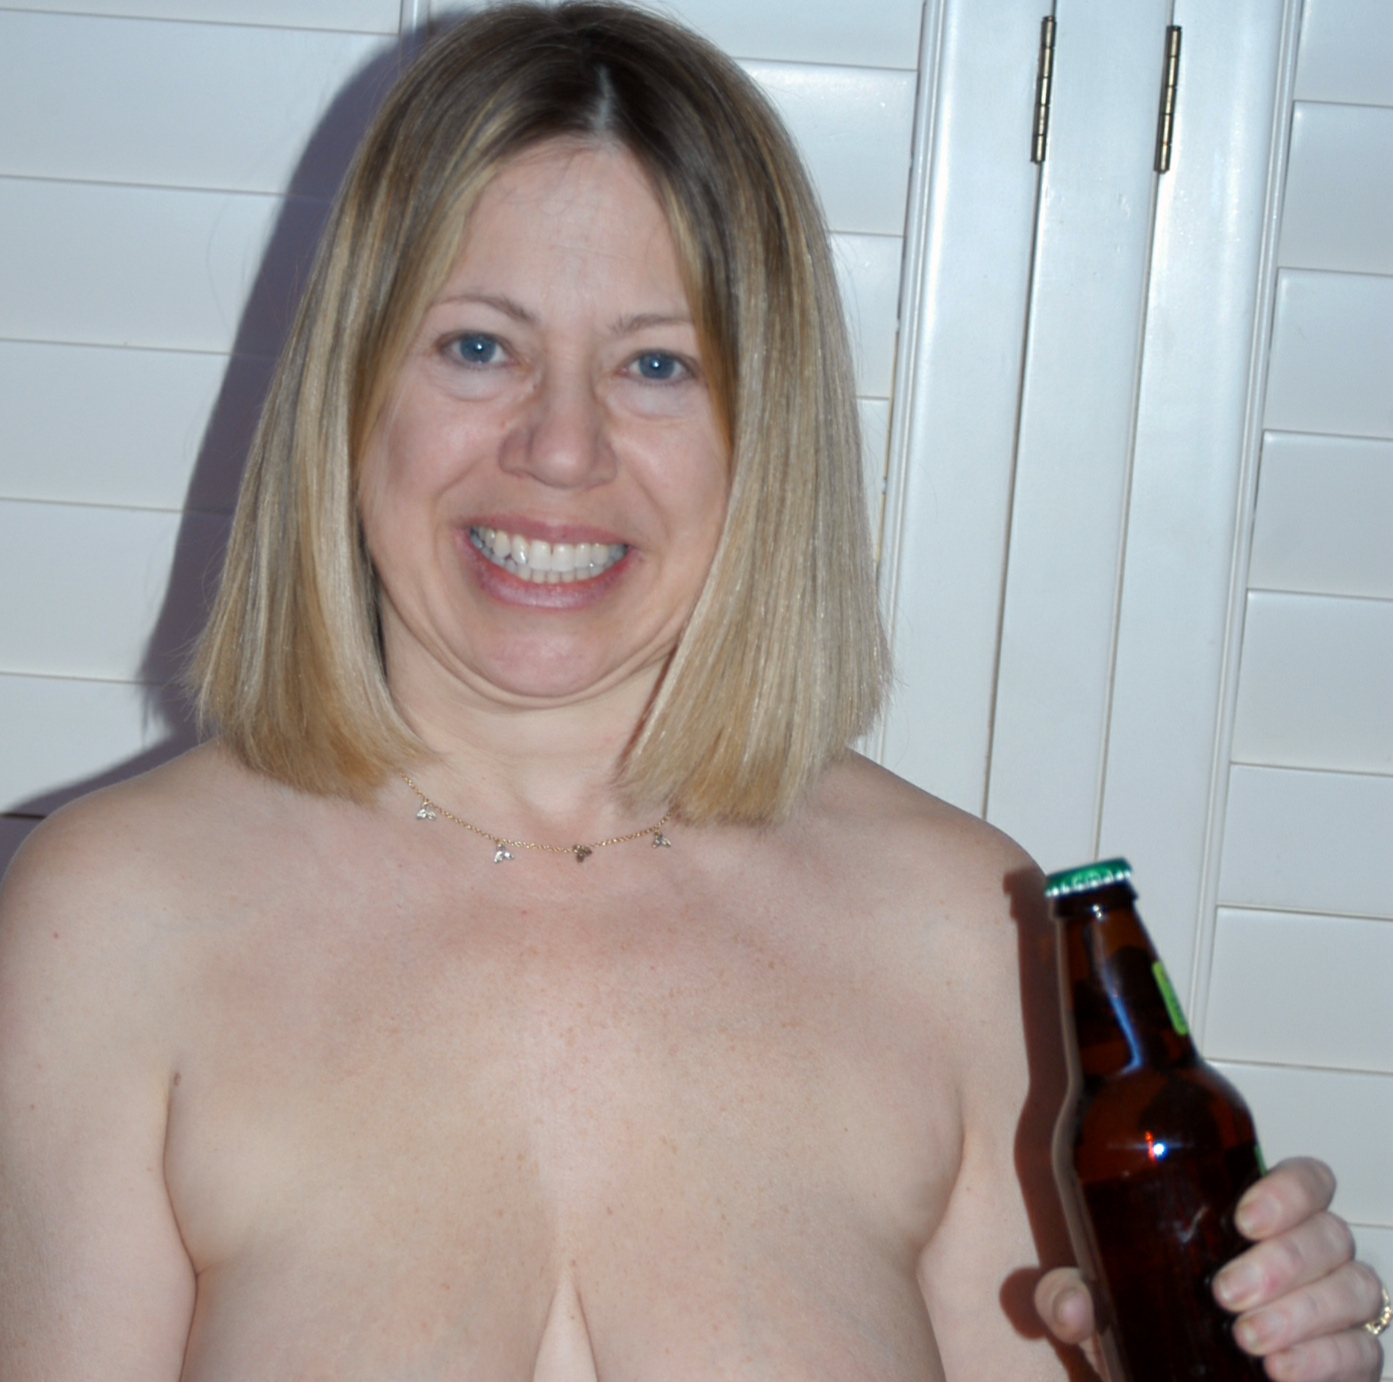 FREE, FUN, NAKED, American craft beer tasting weekend at Terra Cotta Inn  Jan 21 & 22